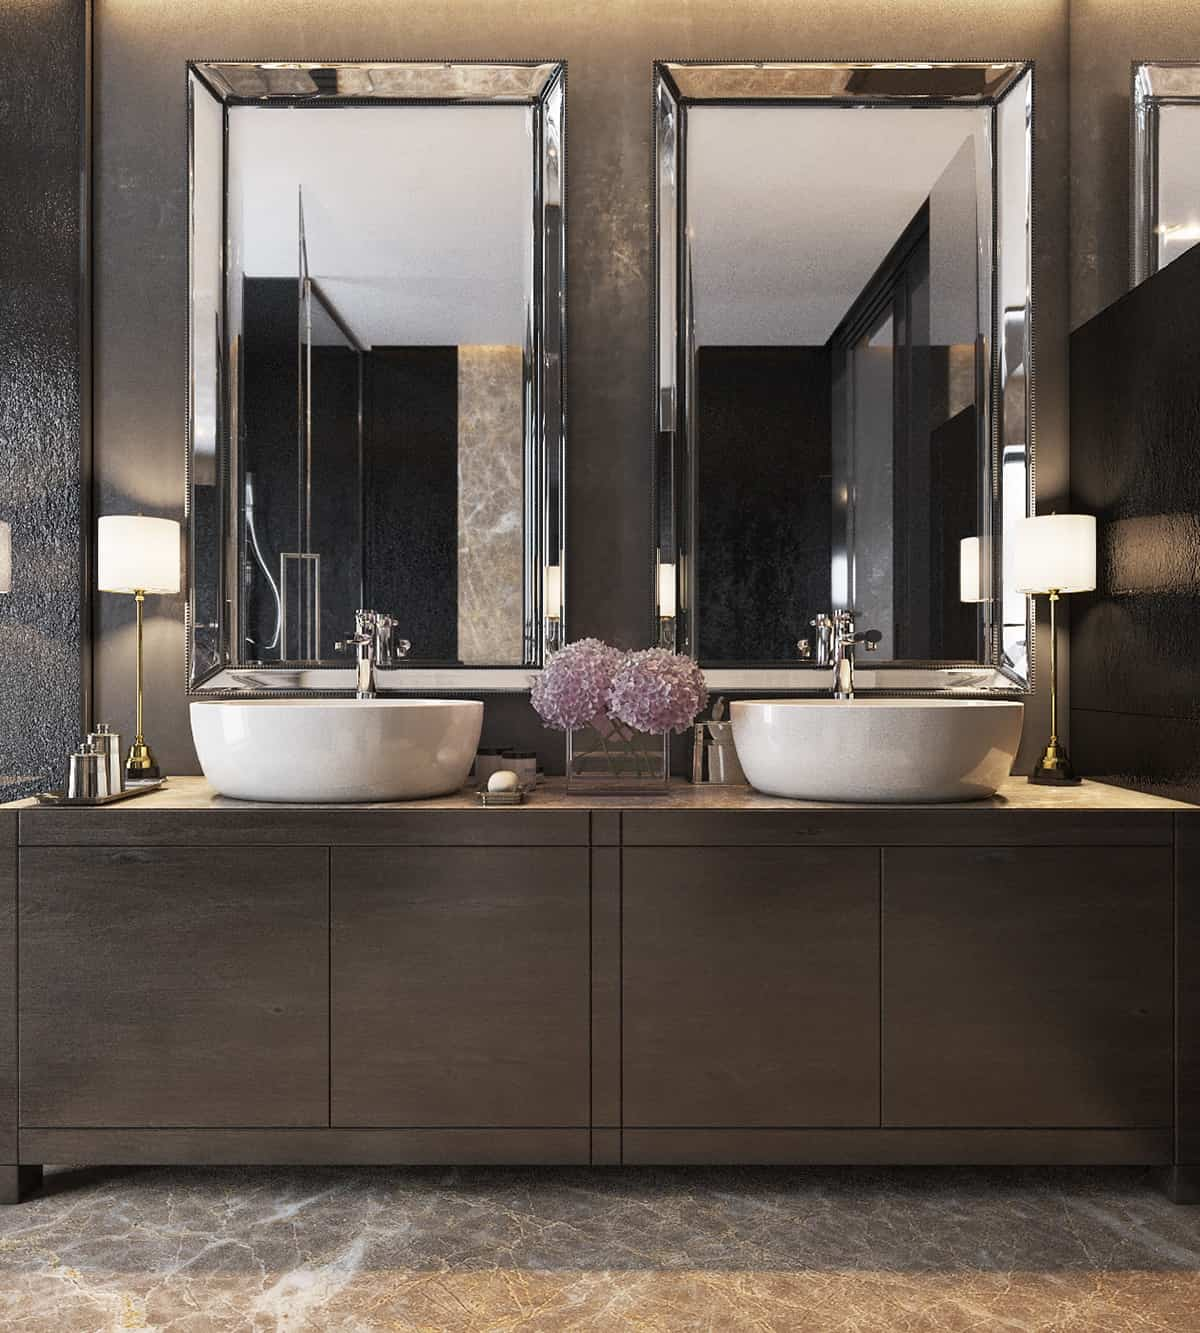 luxury apartments bathrooms with delightful fresh luxury apartments bathrooms images a0ds 2253 inside magnificent luxury apartments bathrooms